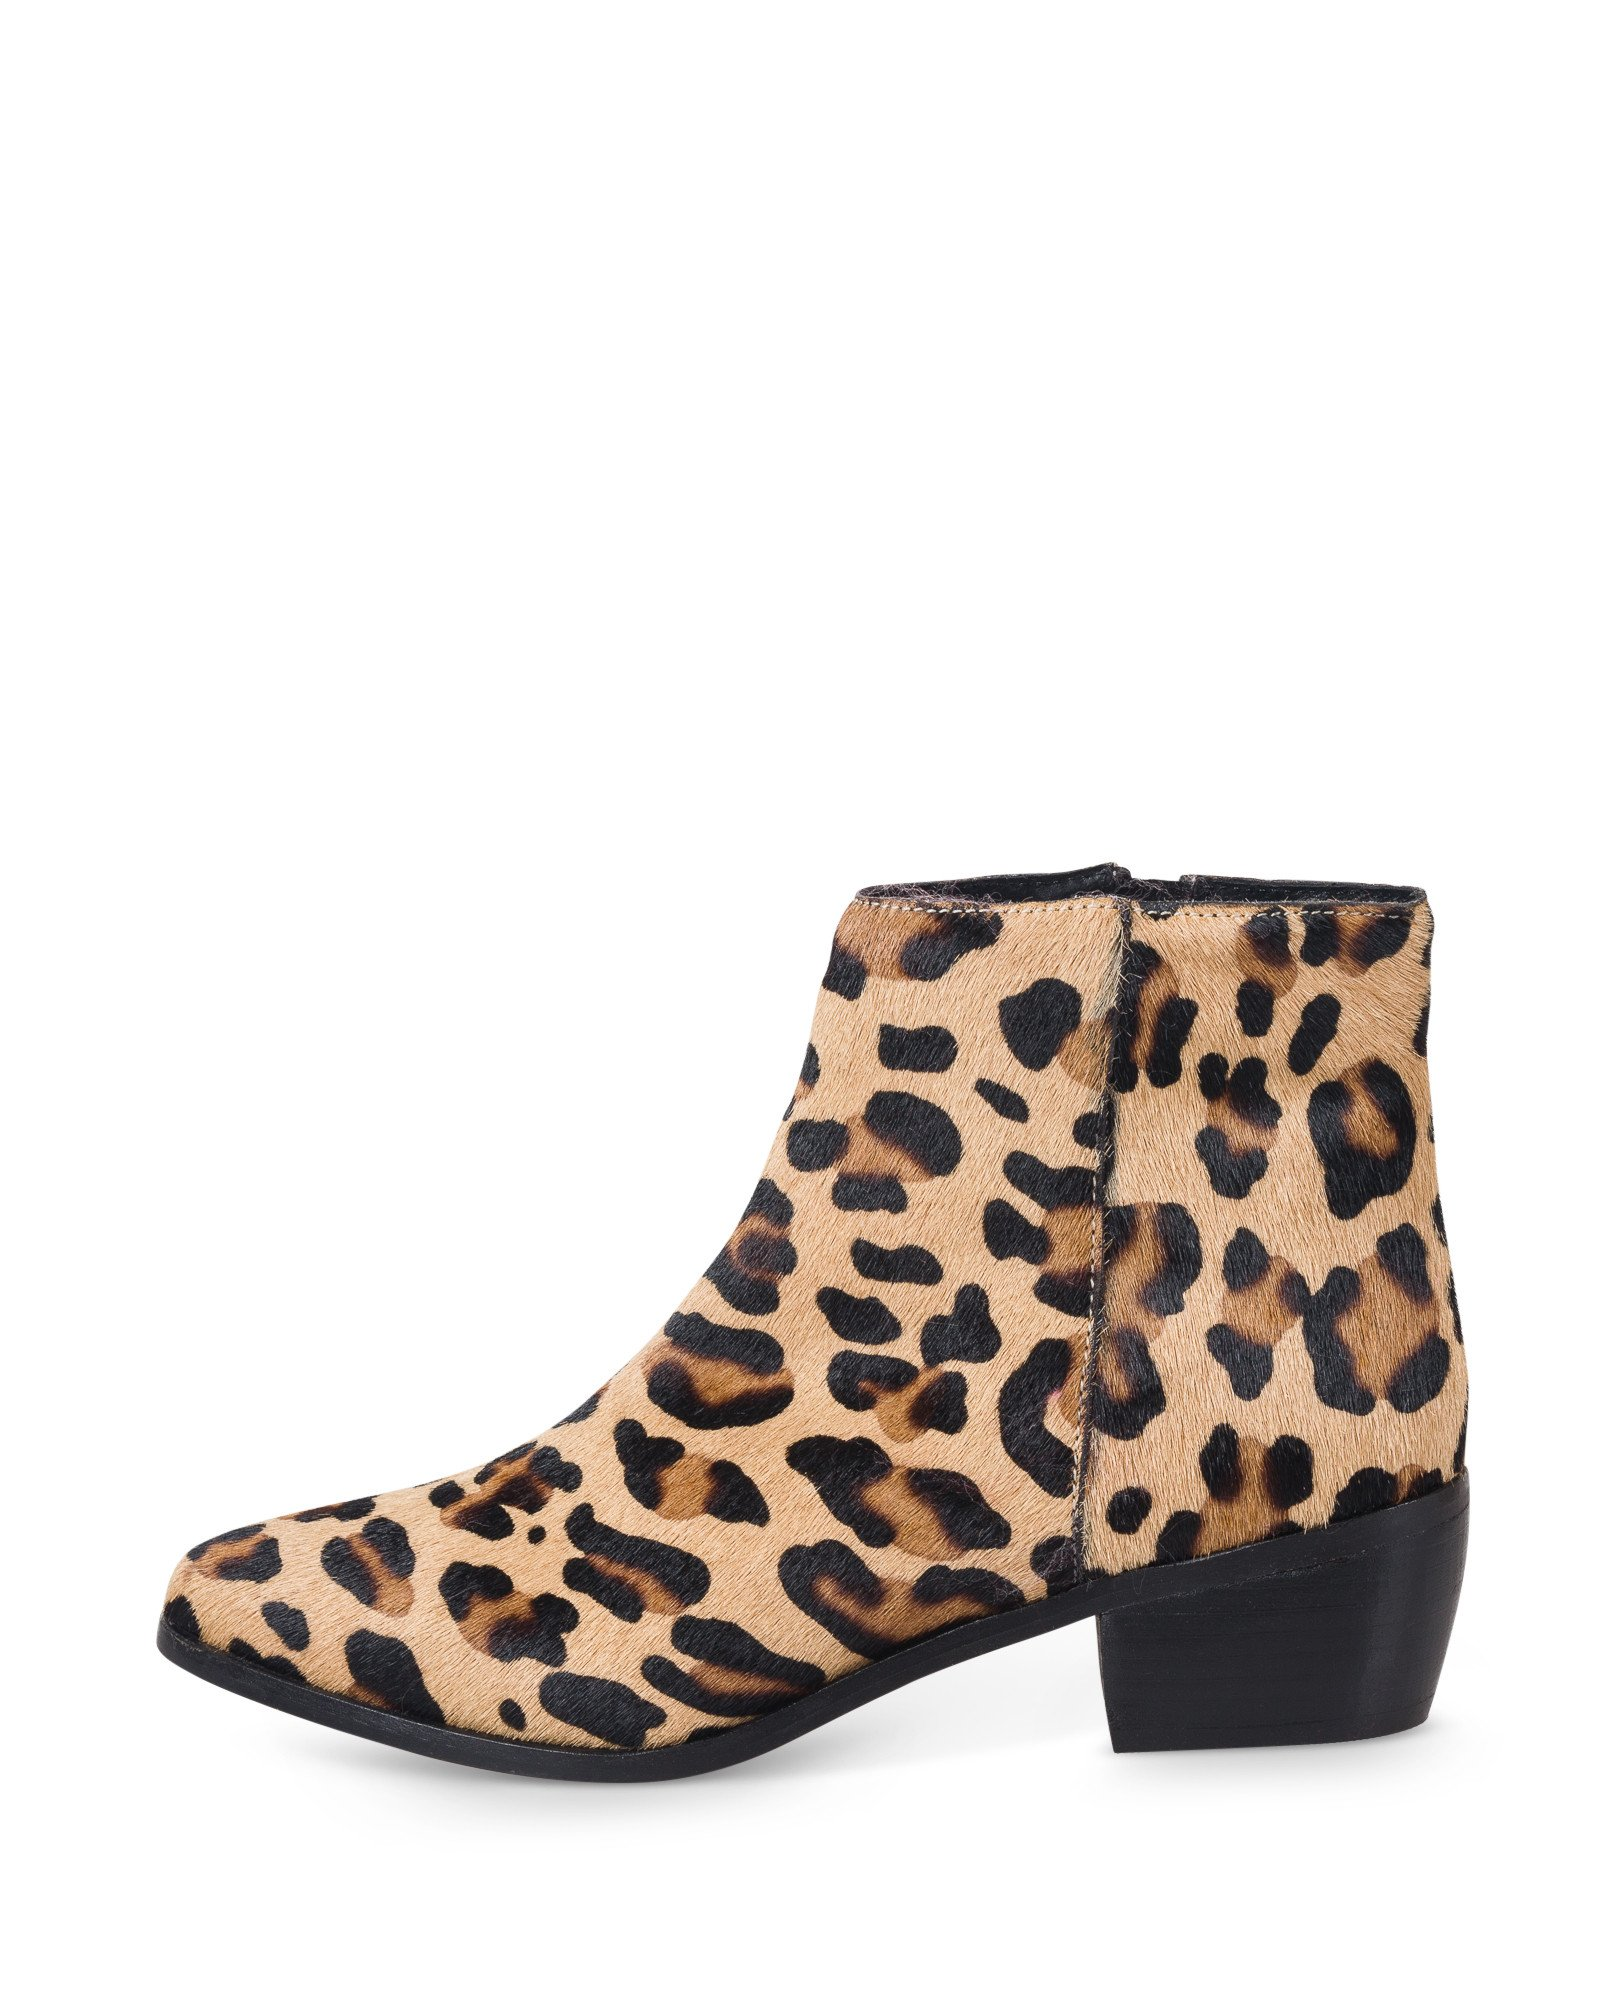 All Over Leopard Print Textured Leather